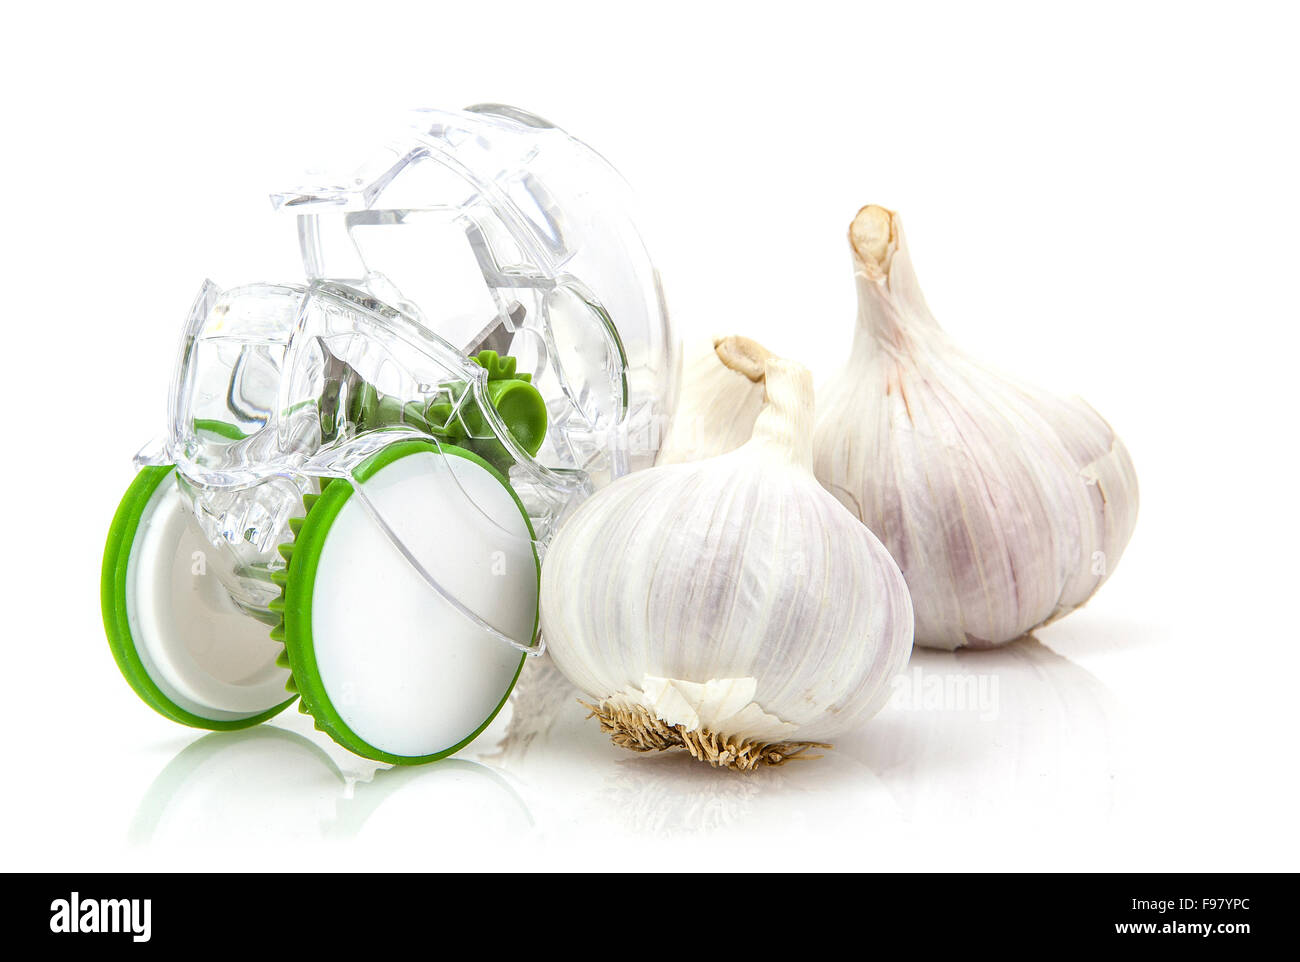 Garlic Cloves with cutter on white background - Stock Image